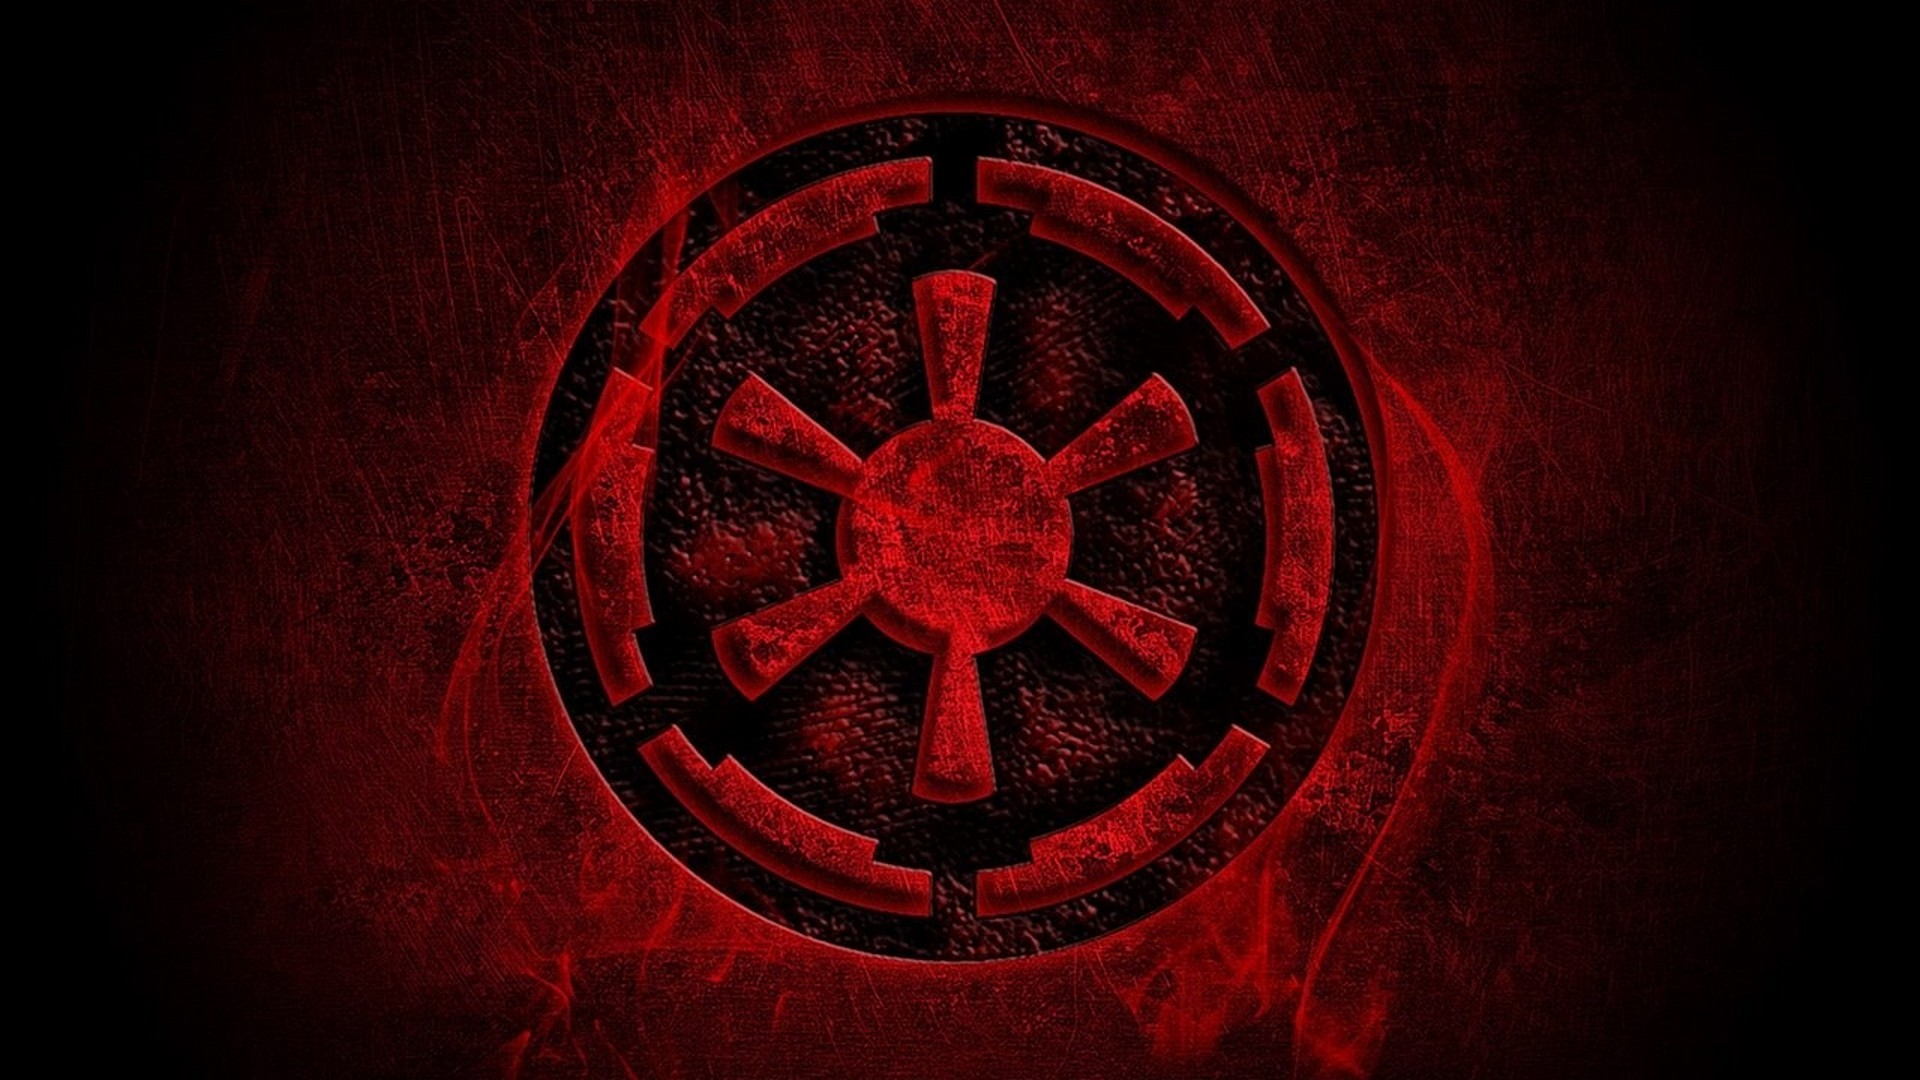 39 398015 star wars galactic empire logo wallpaper star wars